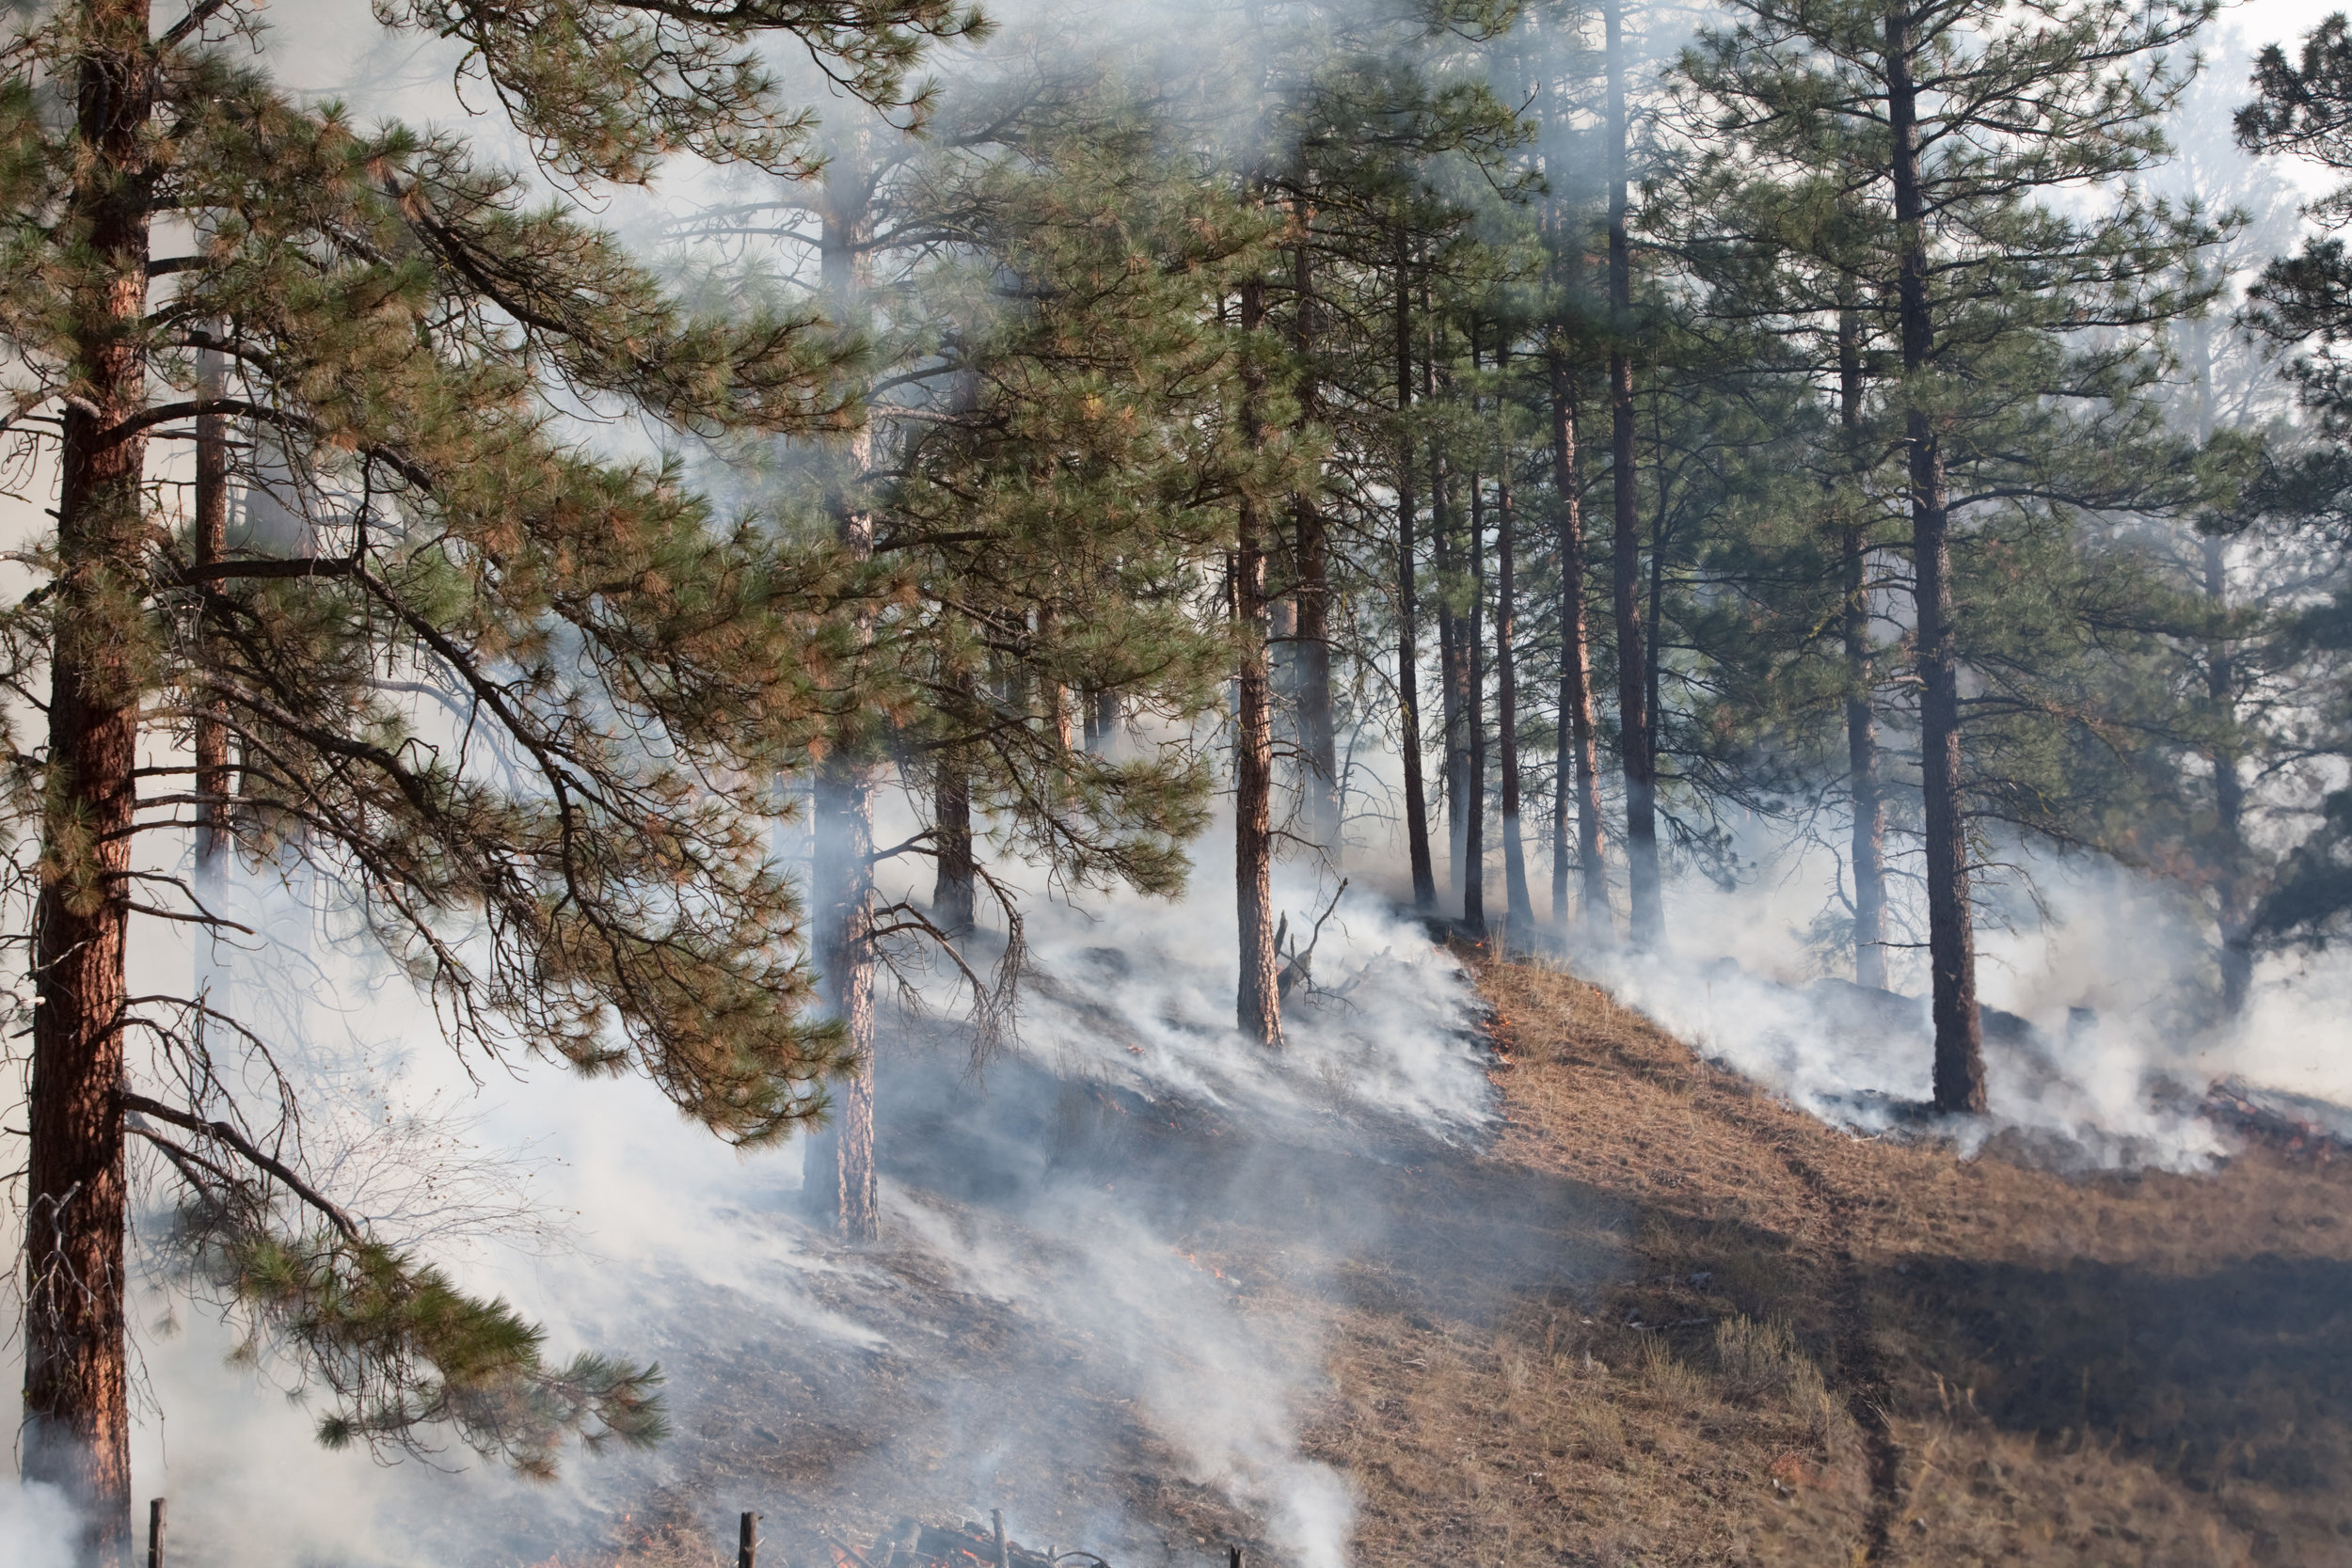 Prescribed fire in Sinlahekin Wildlife Area © John Marshall